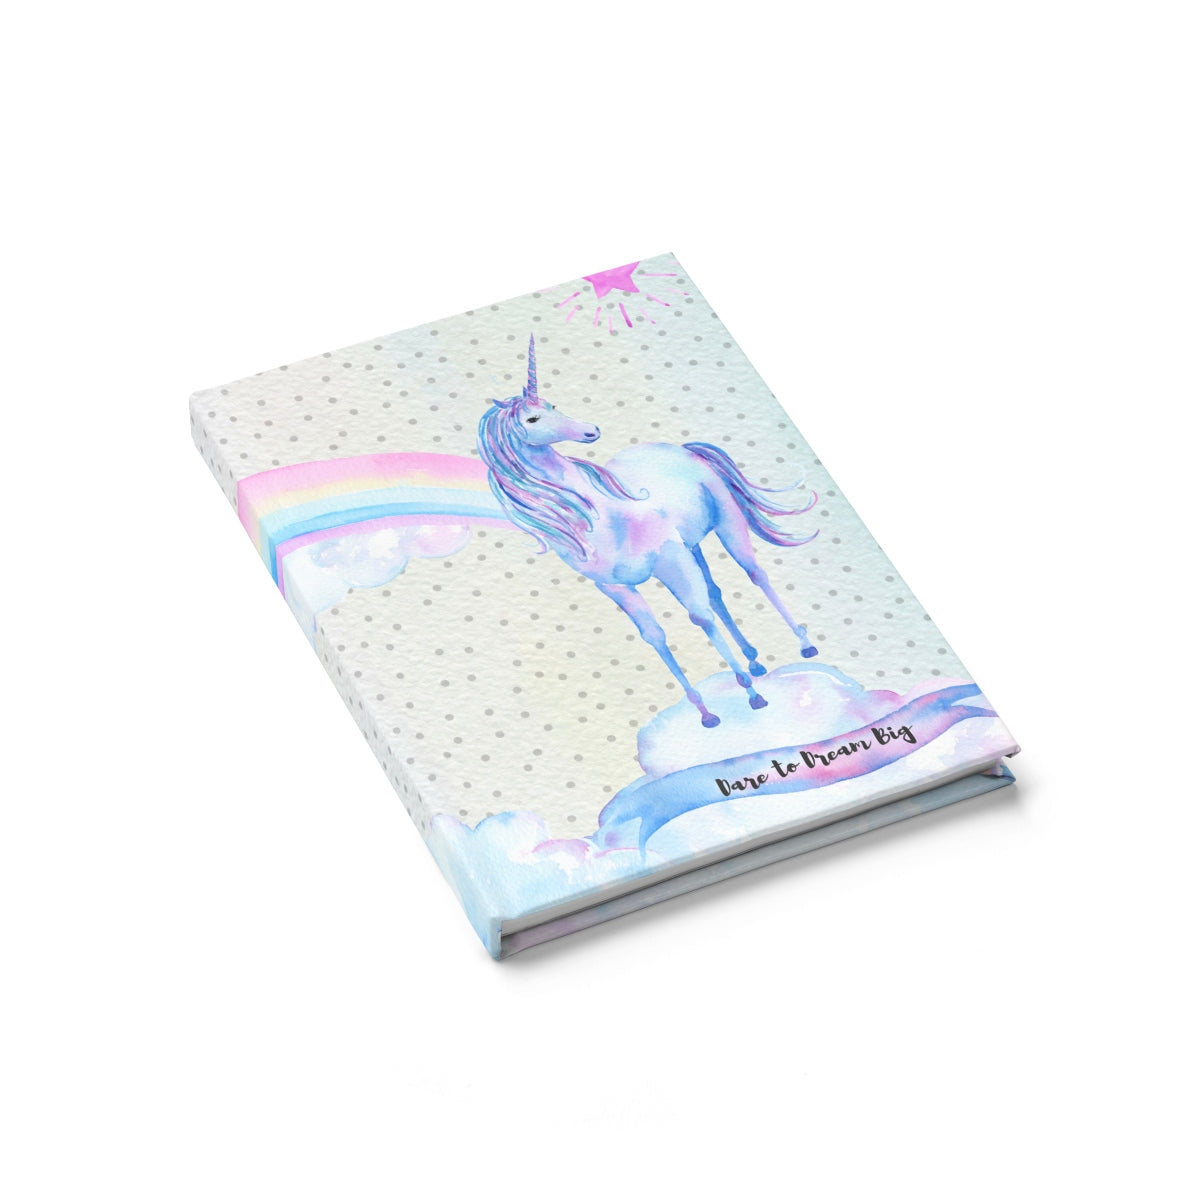 Unicorn Polka Dot Dare to Dream Big Journal - Ruled Line Paper products - Polka Dotted All The Things Boutique